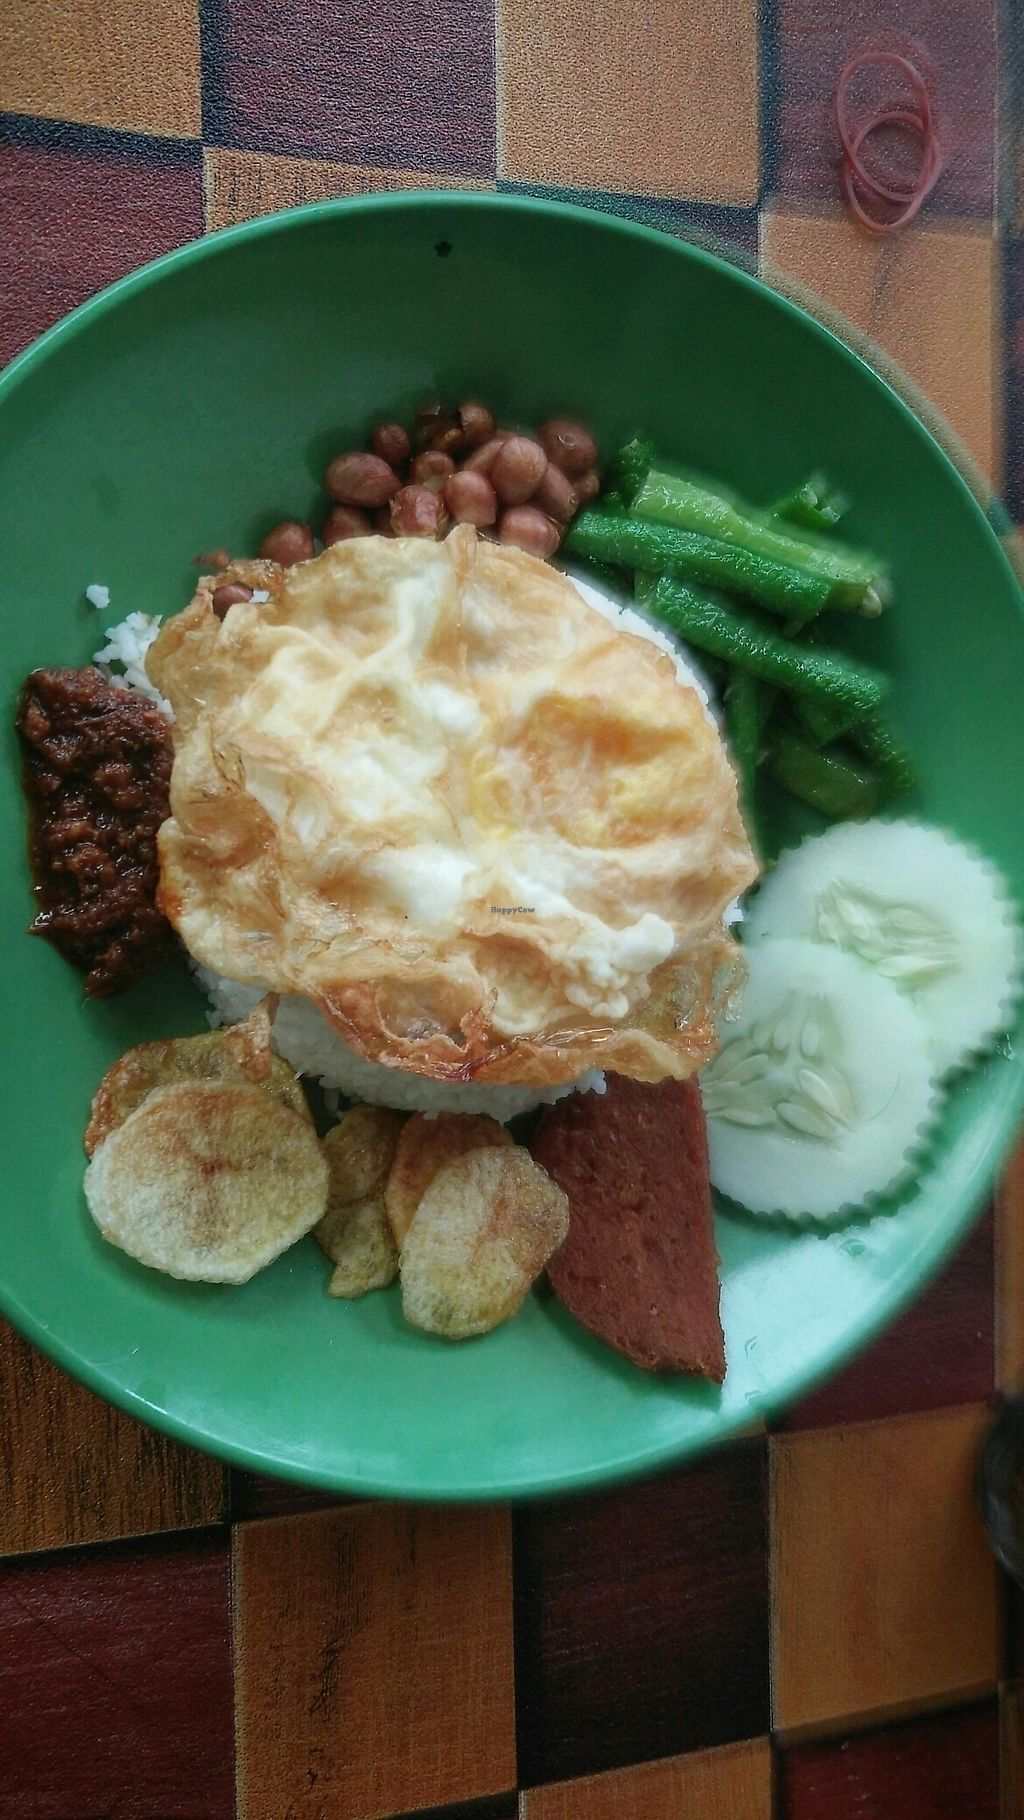 """Photo of Tian Xia Vegetarian  by <a href=""""/members/profile/Jo-AnnTan"""">Jo-AnnTan</a> <br/>Nasi Lemak <br/> August 5, 2017  - <a href='/contact/abuse/image/62302/288852'>Report</a>"""